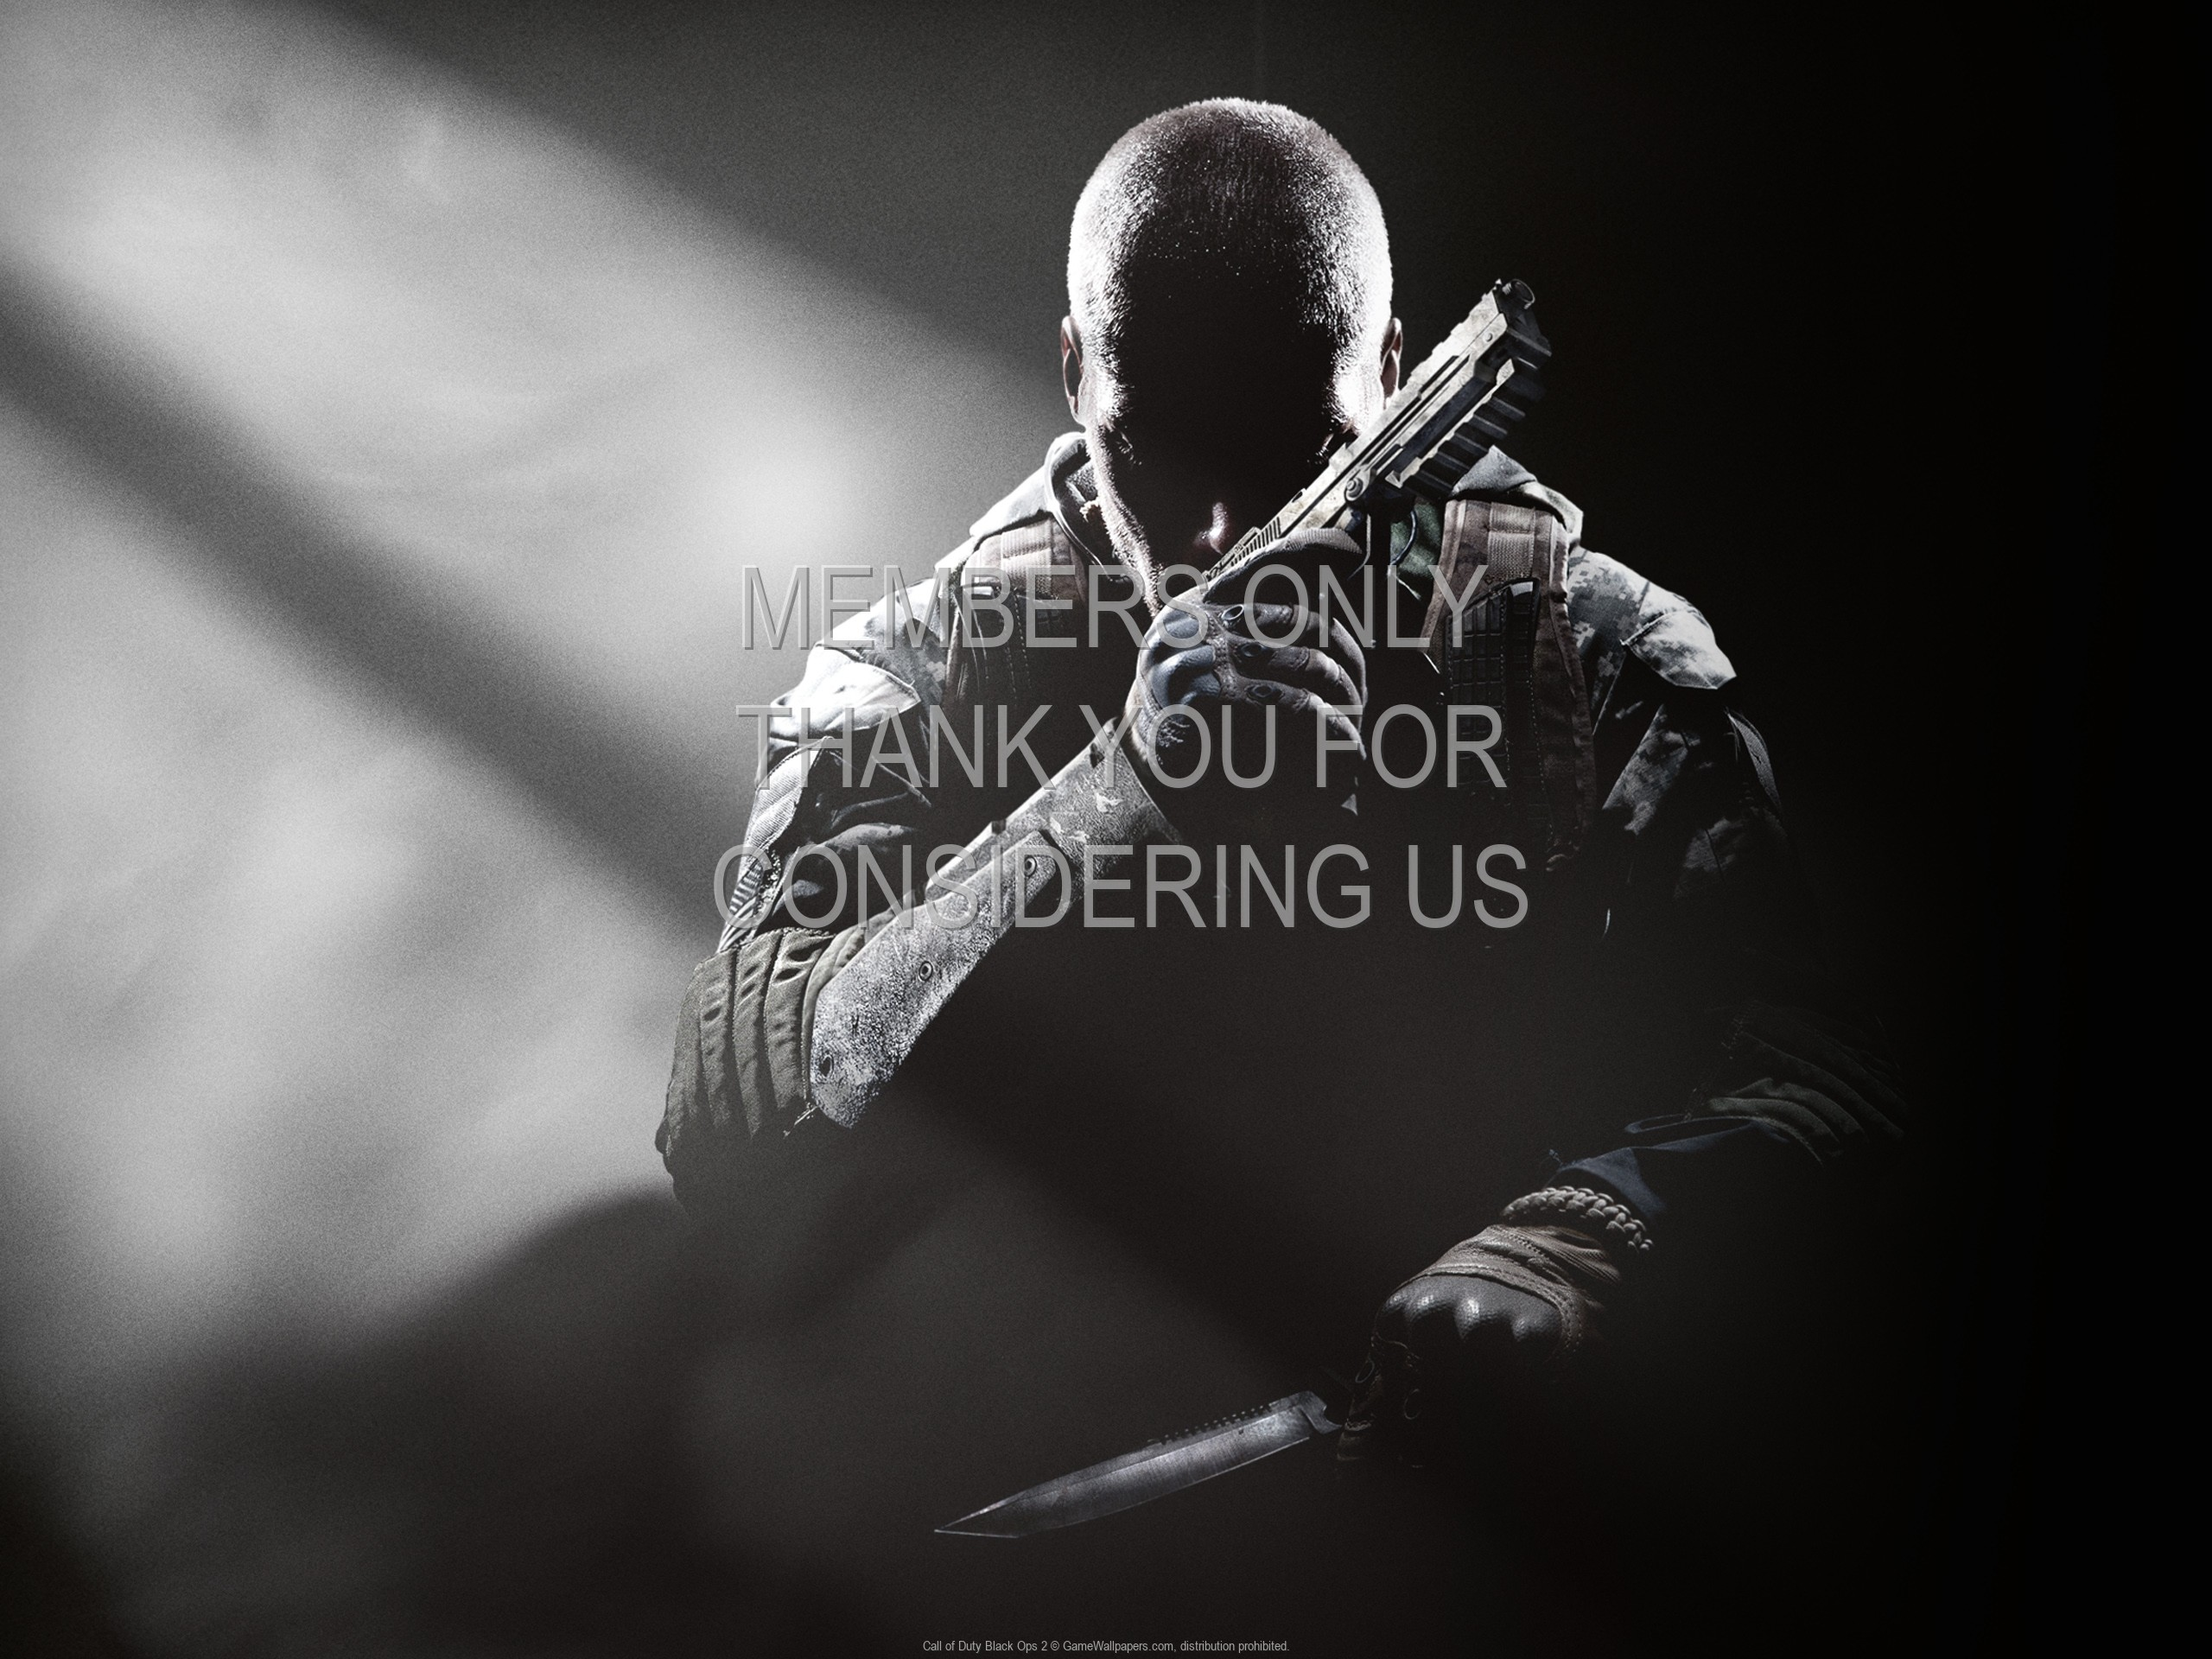 2560x1920 Call of Duty: Black Ops 2 wallpaper 01 @ 1920x1080